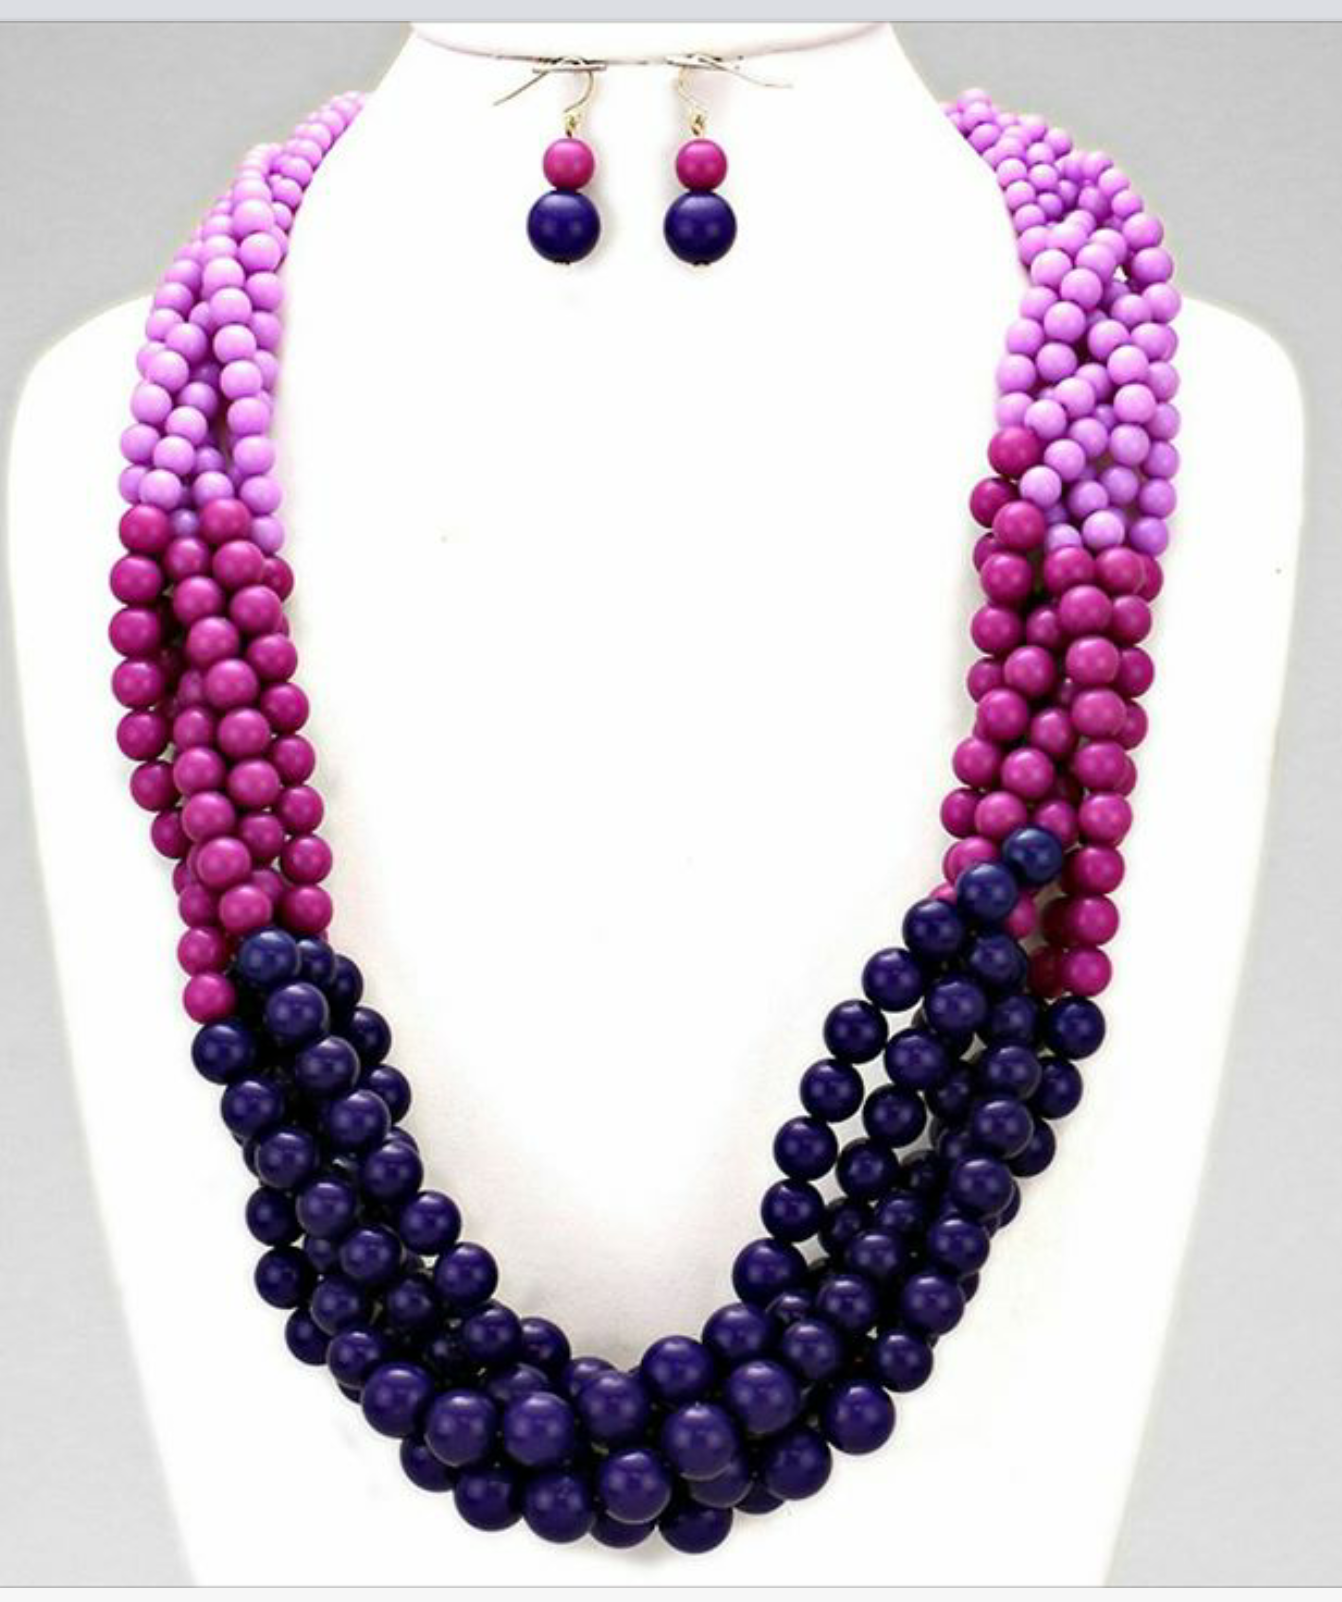 Lady Magnifique Collection OMBRE BRAIDED MULTI STRAND BEADS NECKLACE